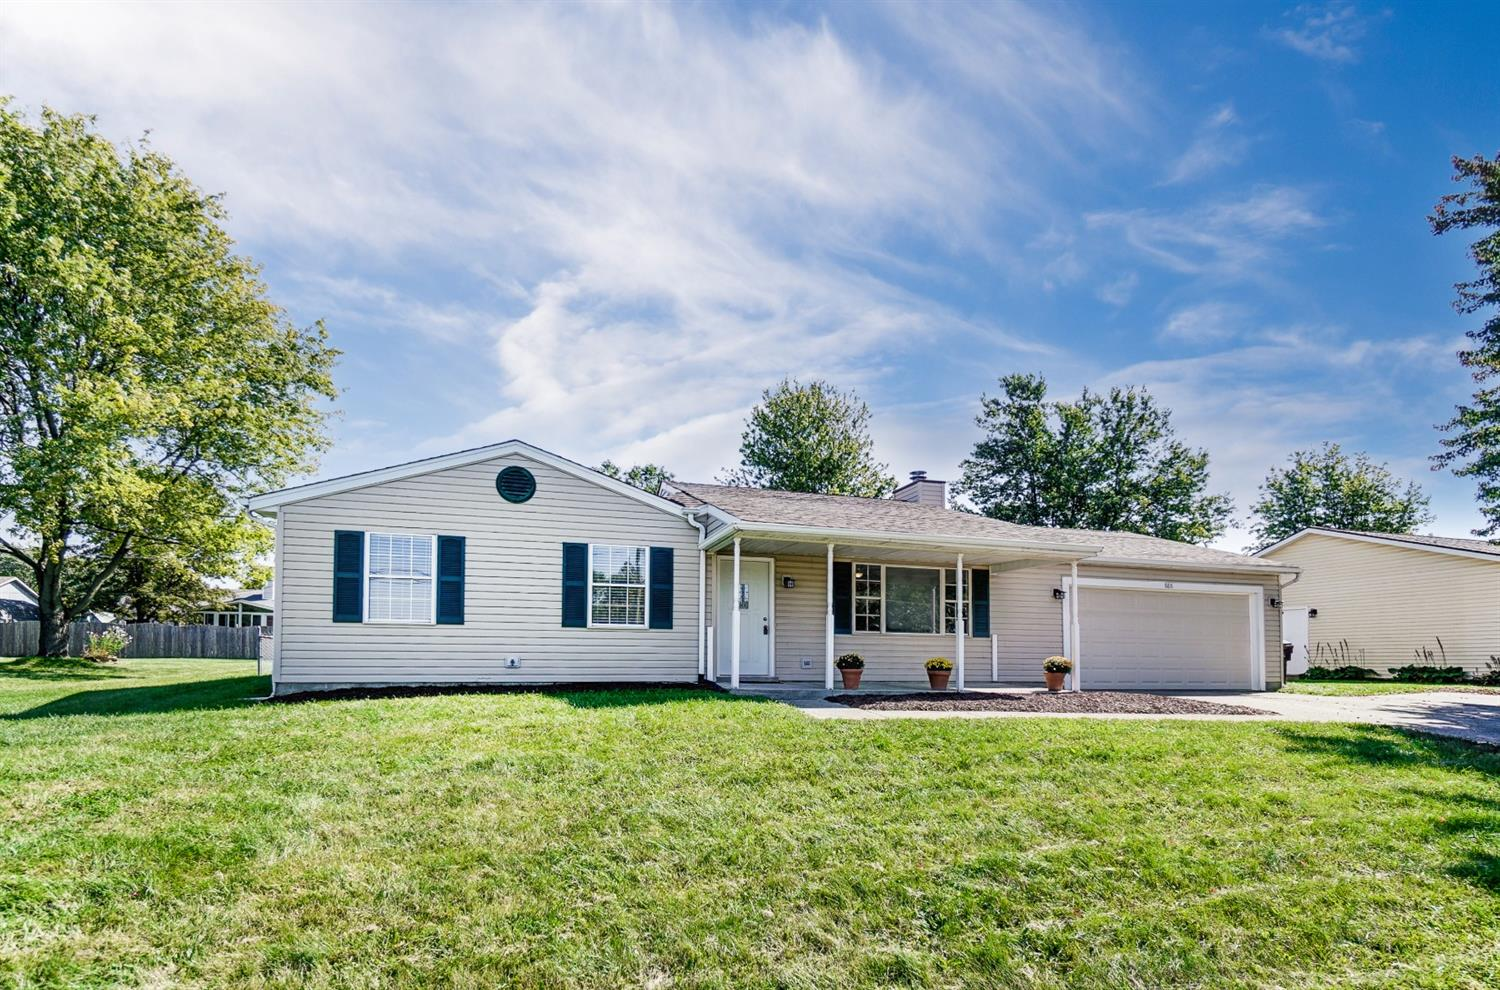 888 Main Street, Monroe, Ohio 45050, 4 Bedrooms Bedrooms, 6 Rooms Rooms,2 BathroomsBathrooms,Single Family Residence,For Sale,Main,1717496